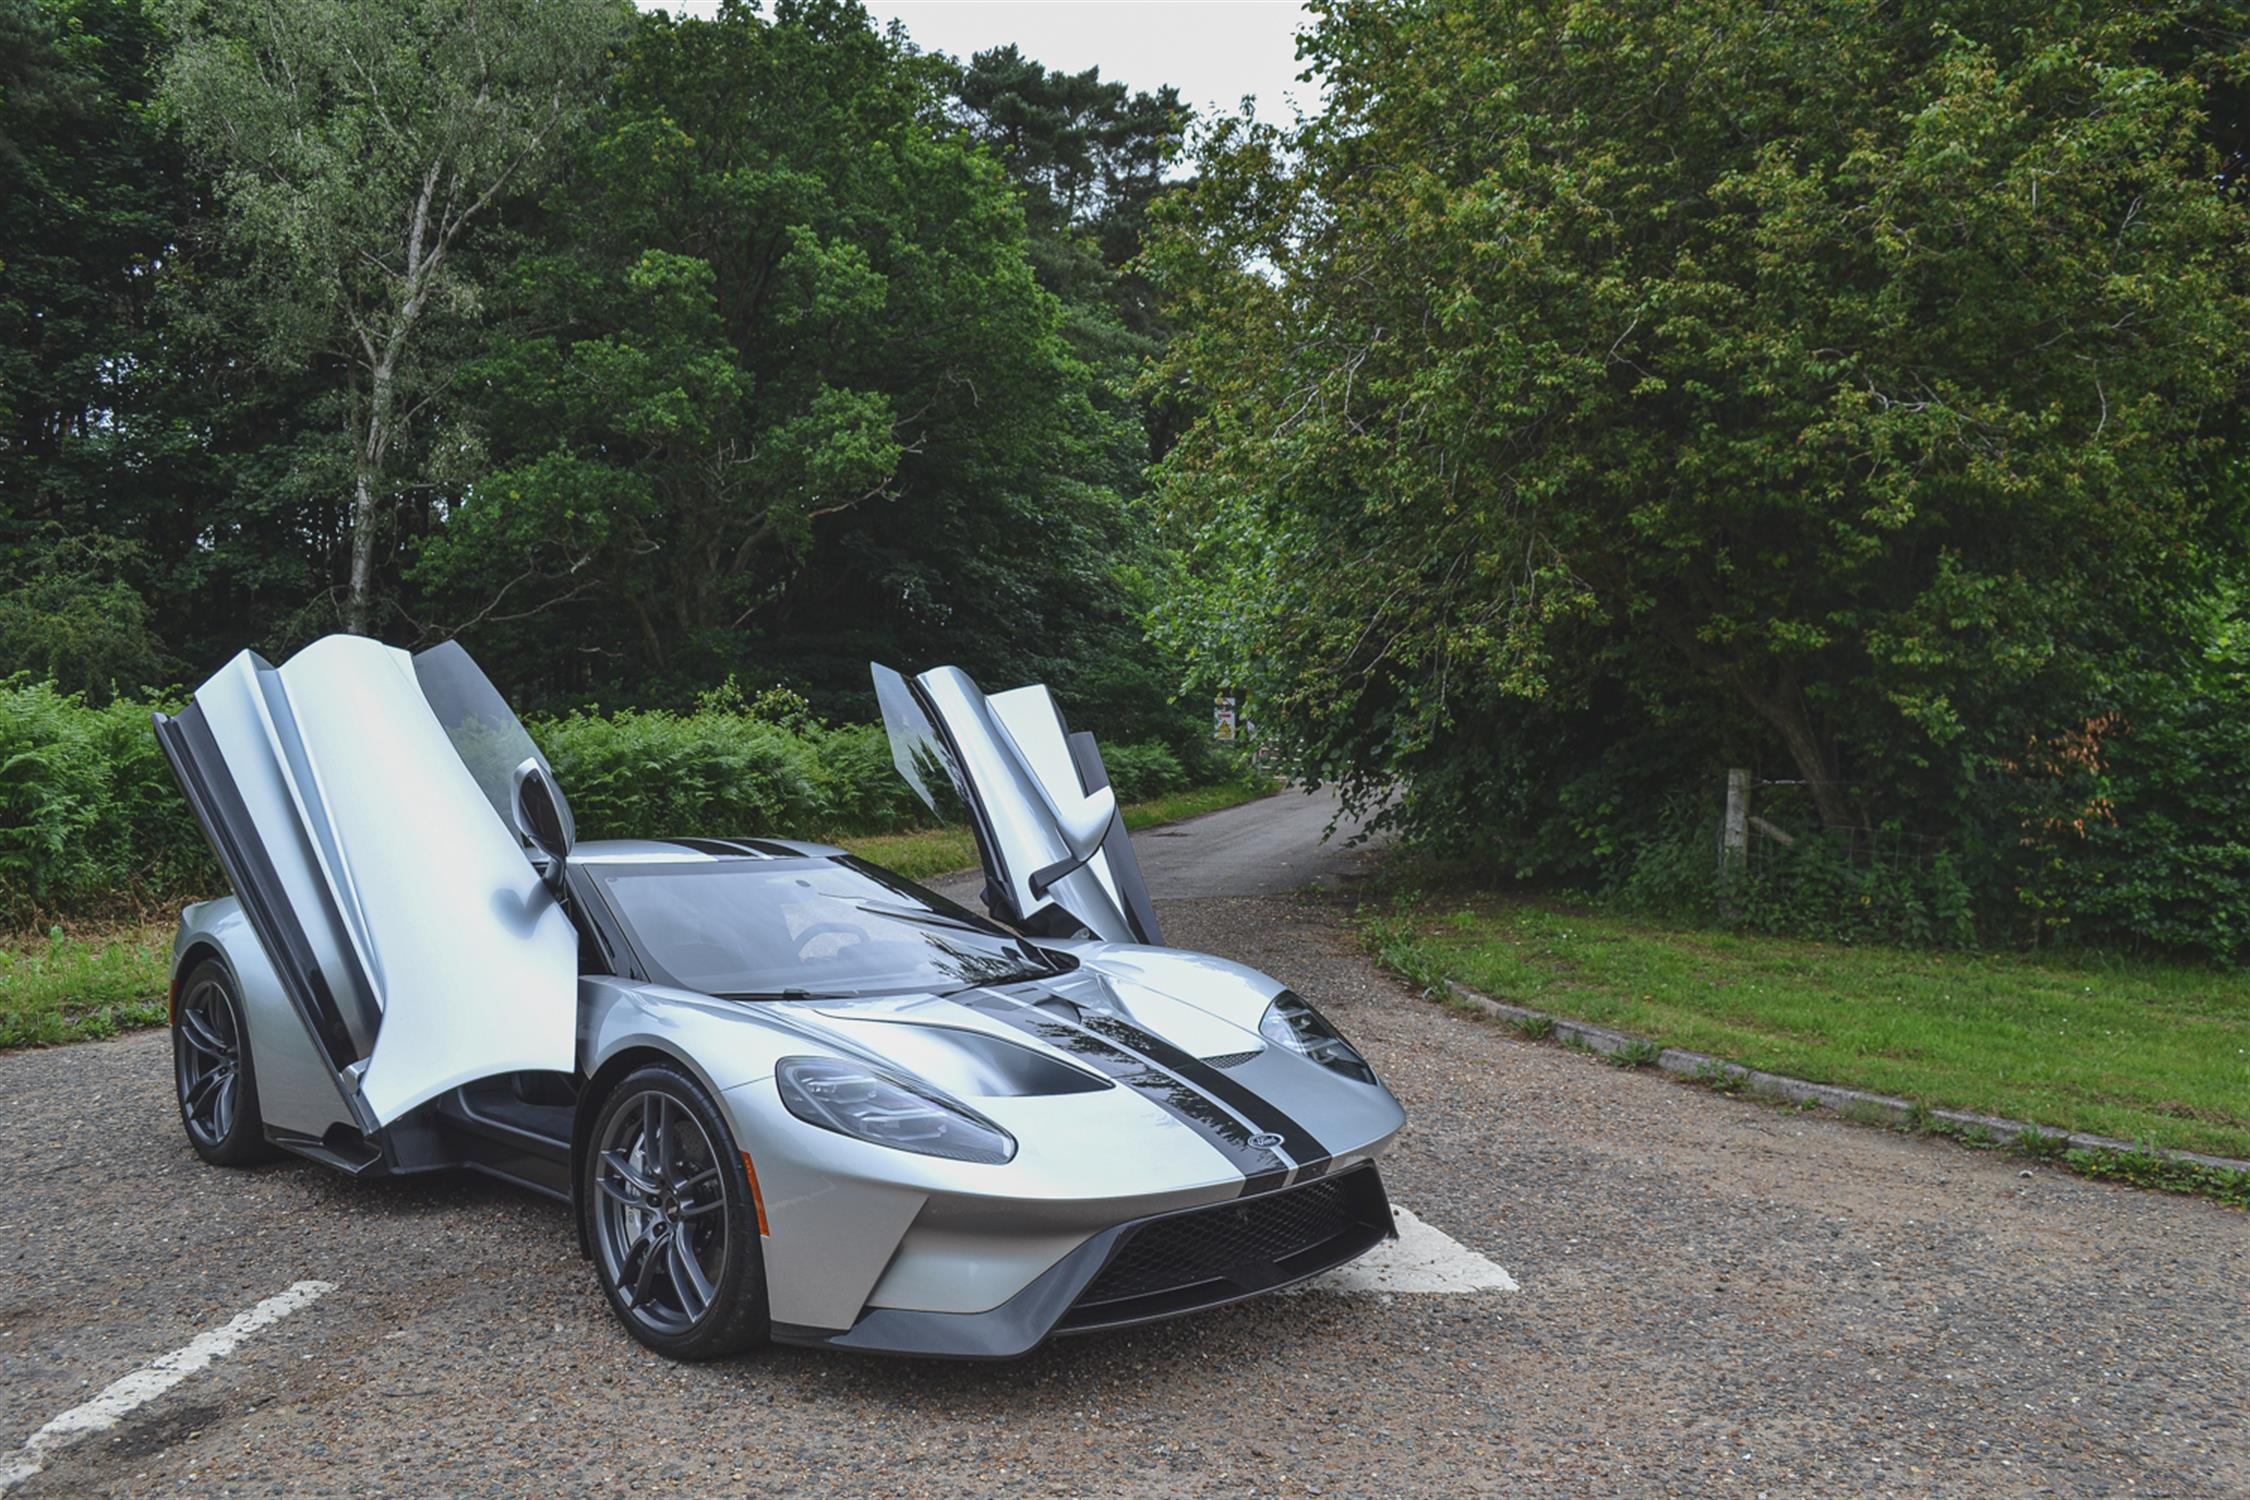 2018 Ford GT - Image 9 of 20